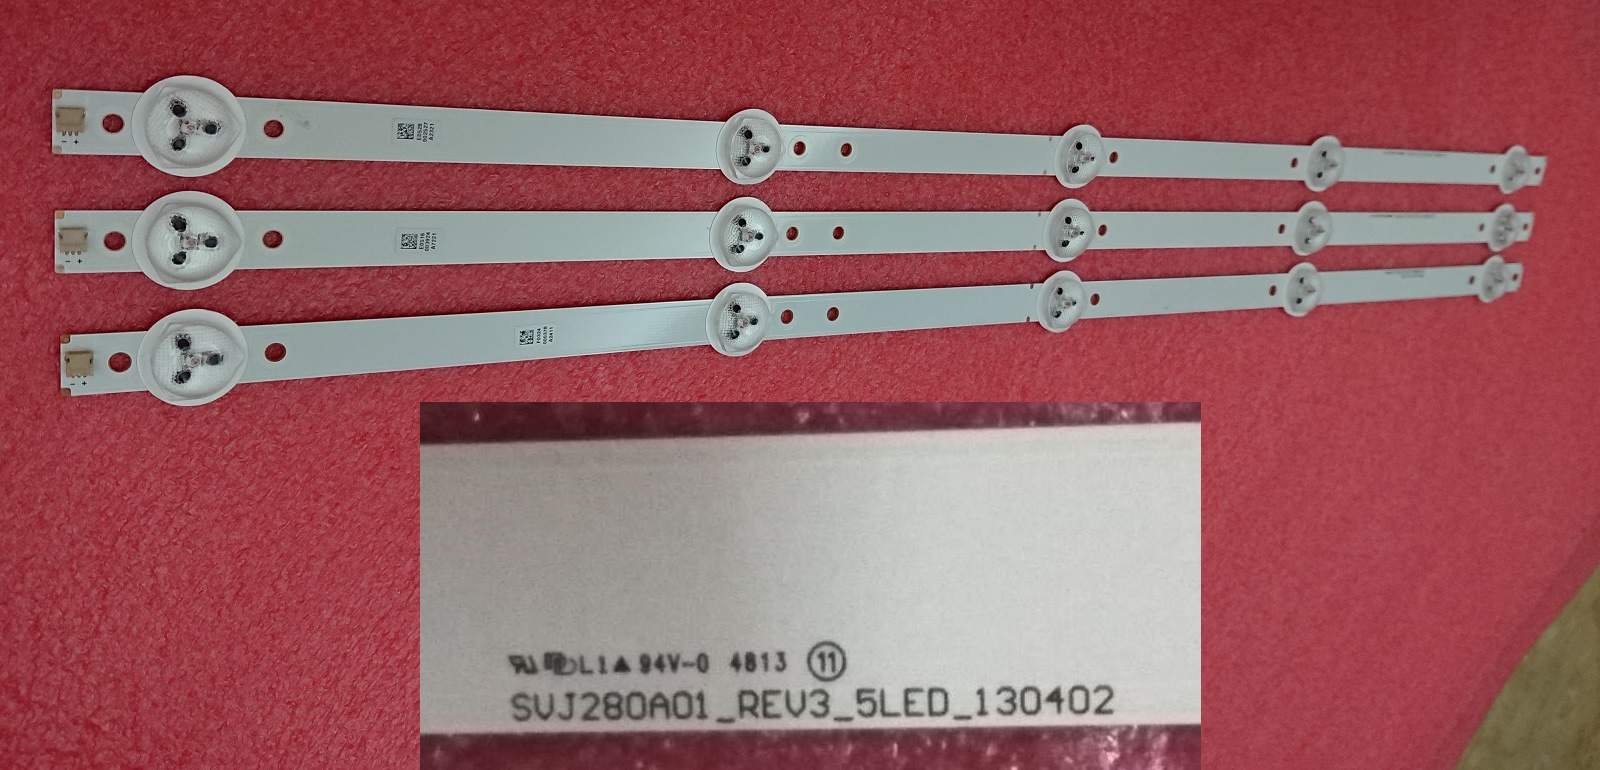 SVJ280A01_REV3_5LED_130402 5 leds 53cm 3pcs/set